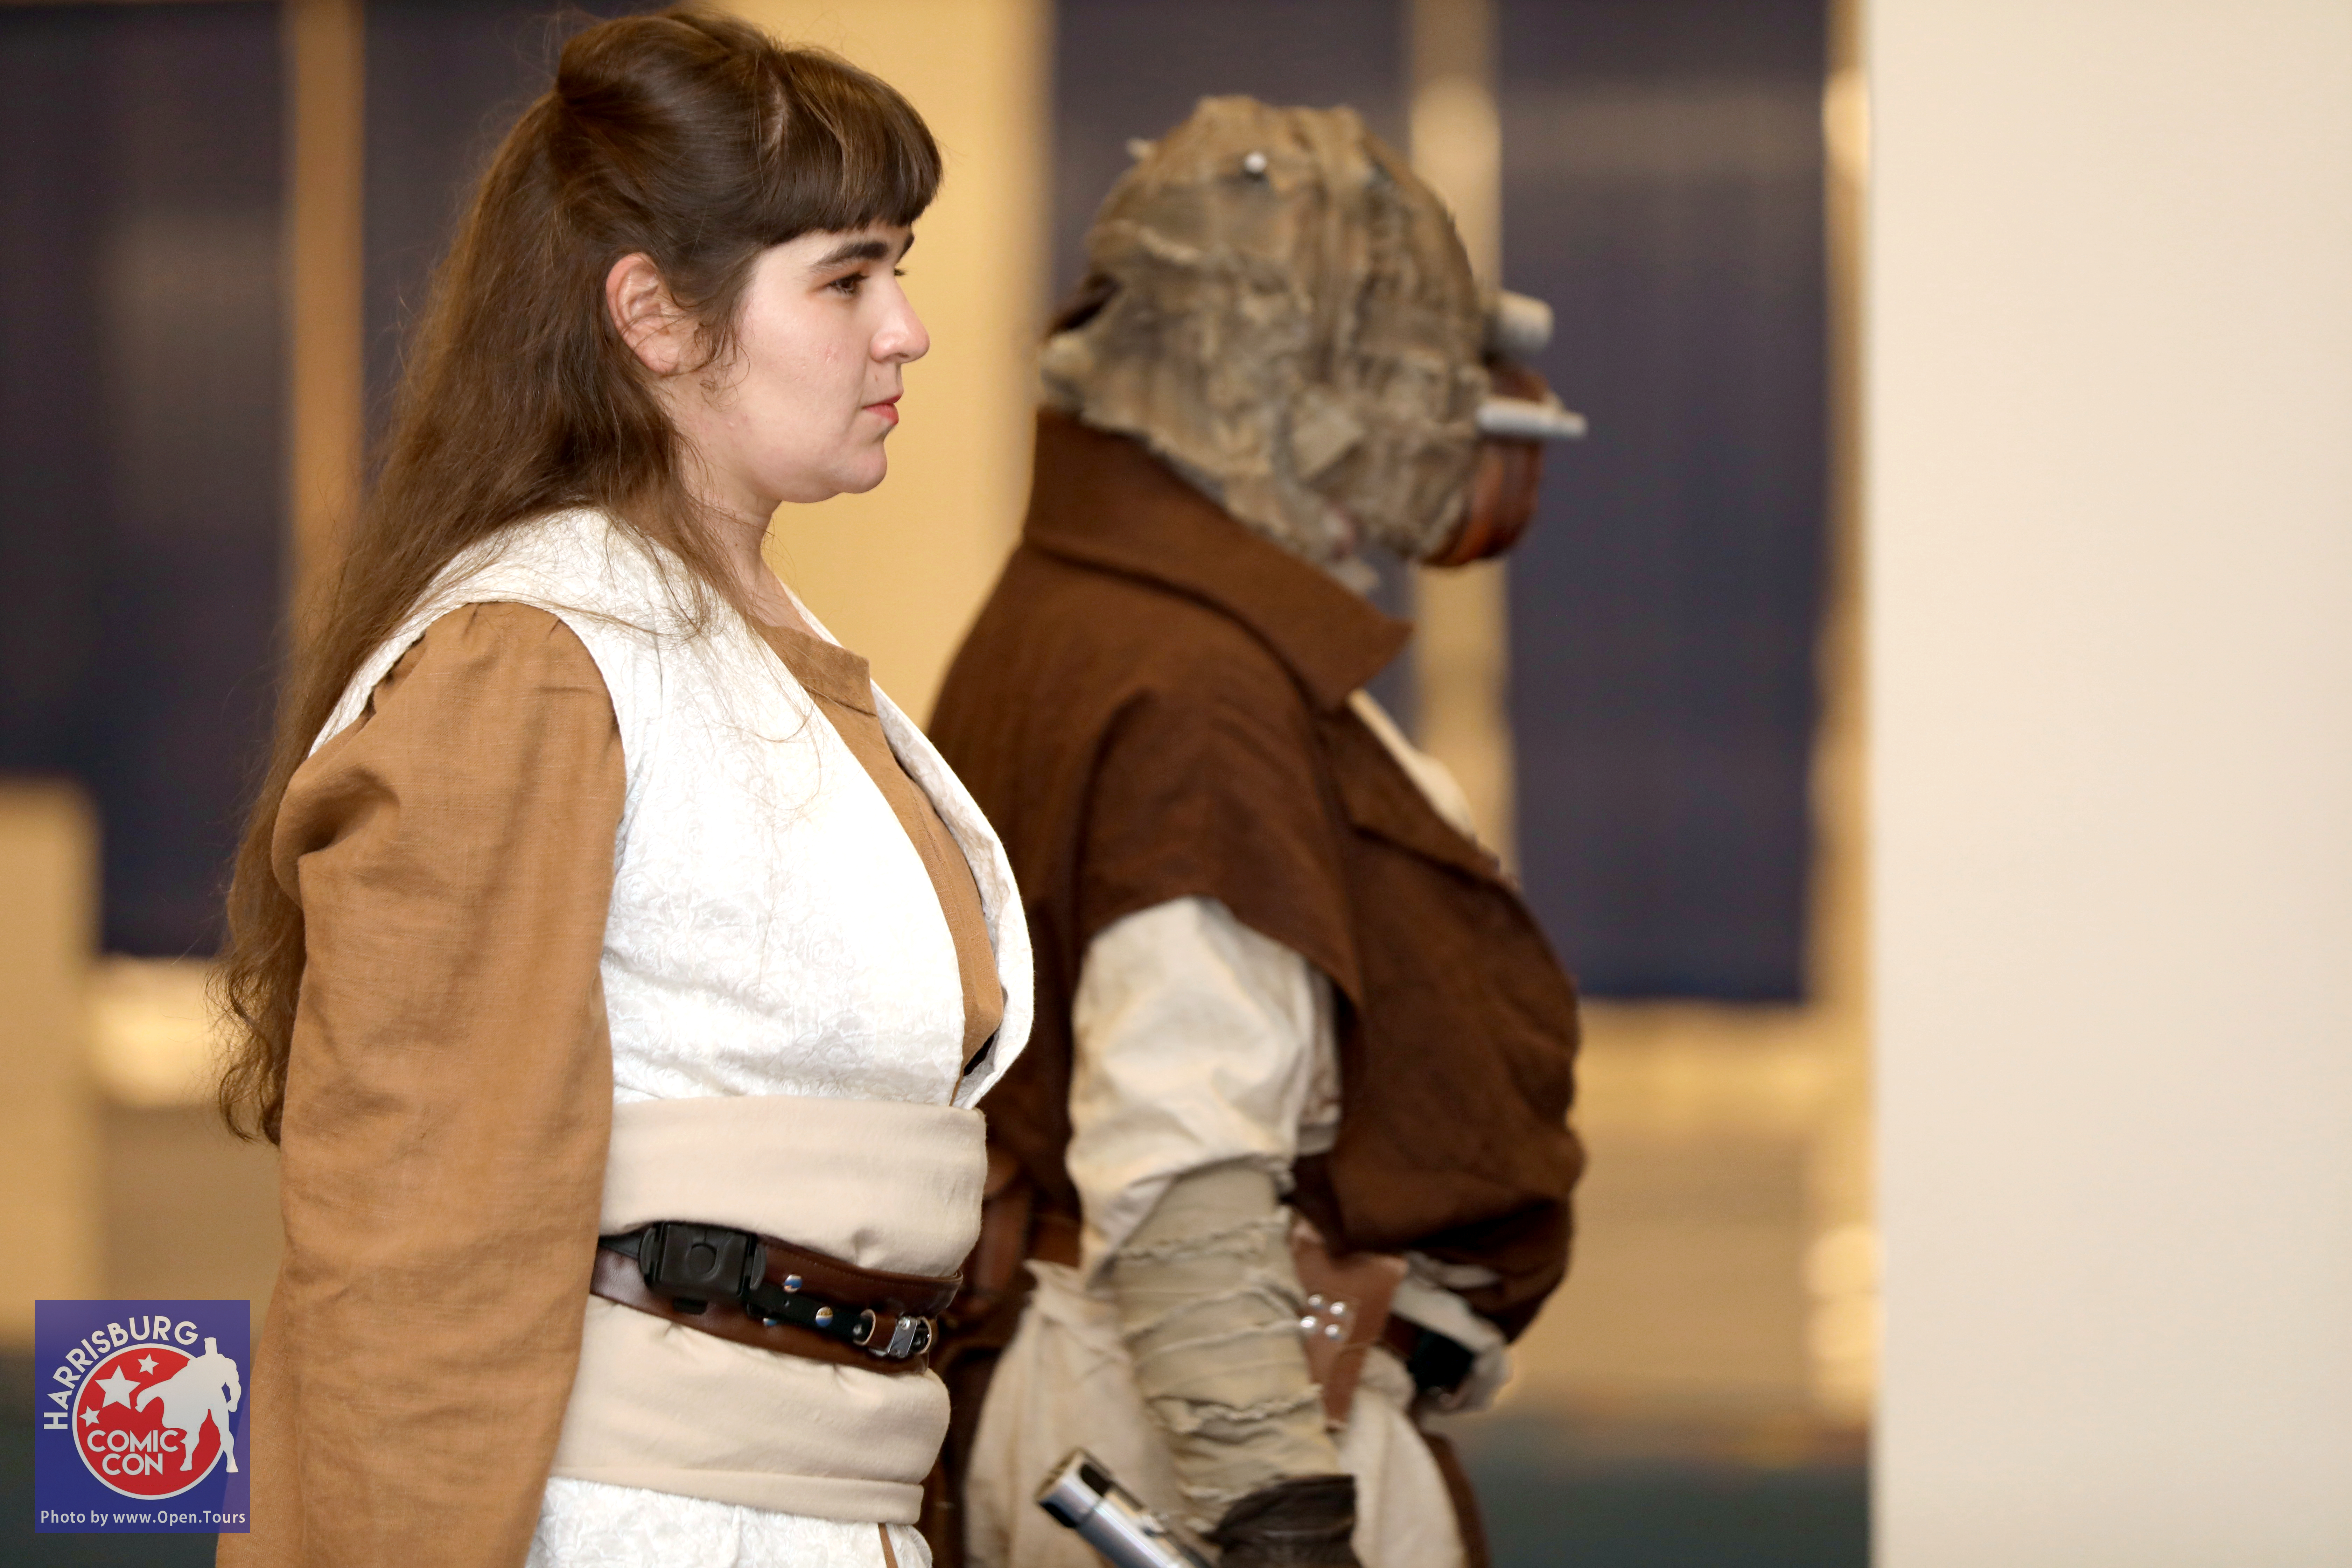 Capital City Jedi Knights perform at Harrisburg Comic Con